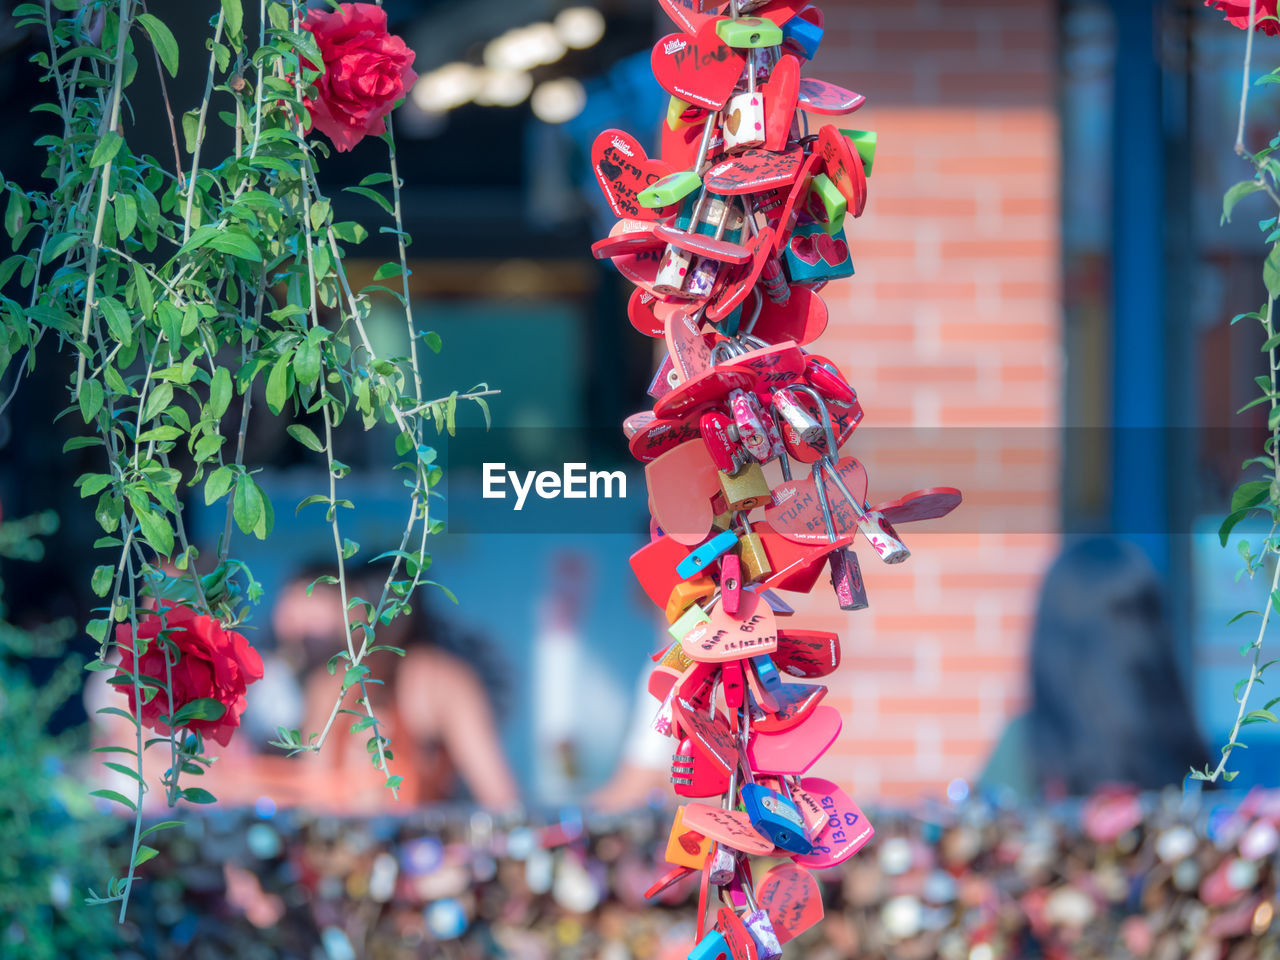 no people, representation, day, focus on foreground, decoration, creativity, art and craft, red, close-up, selective focus, outdoors, multi colored, hanging, nature, plant, celebration, for sale, toy, human representation, festival